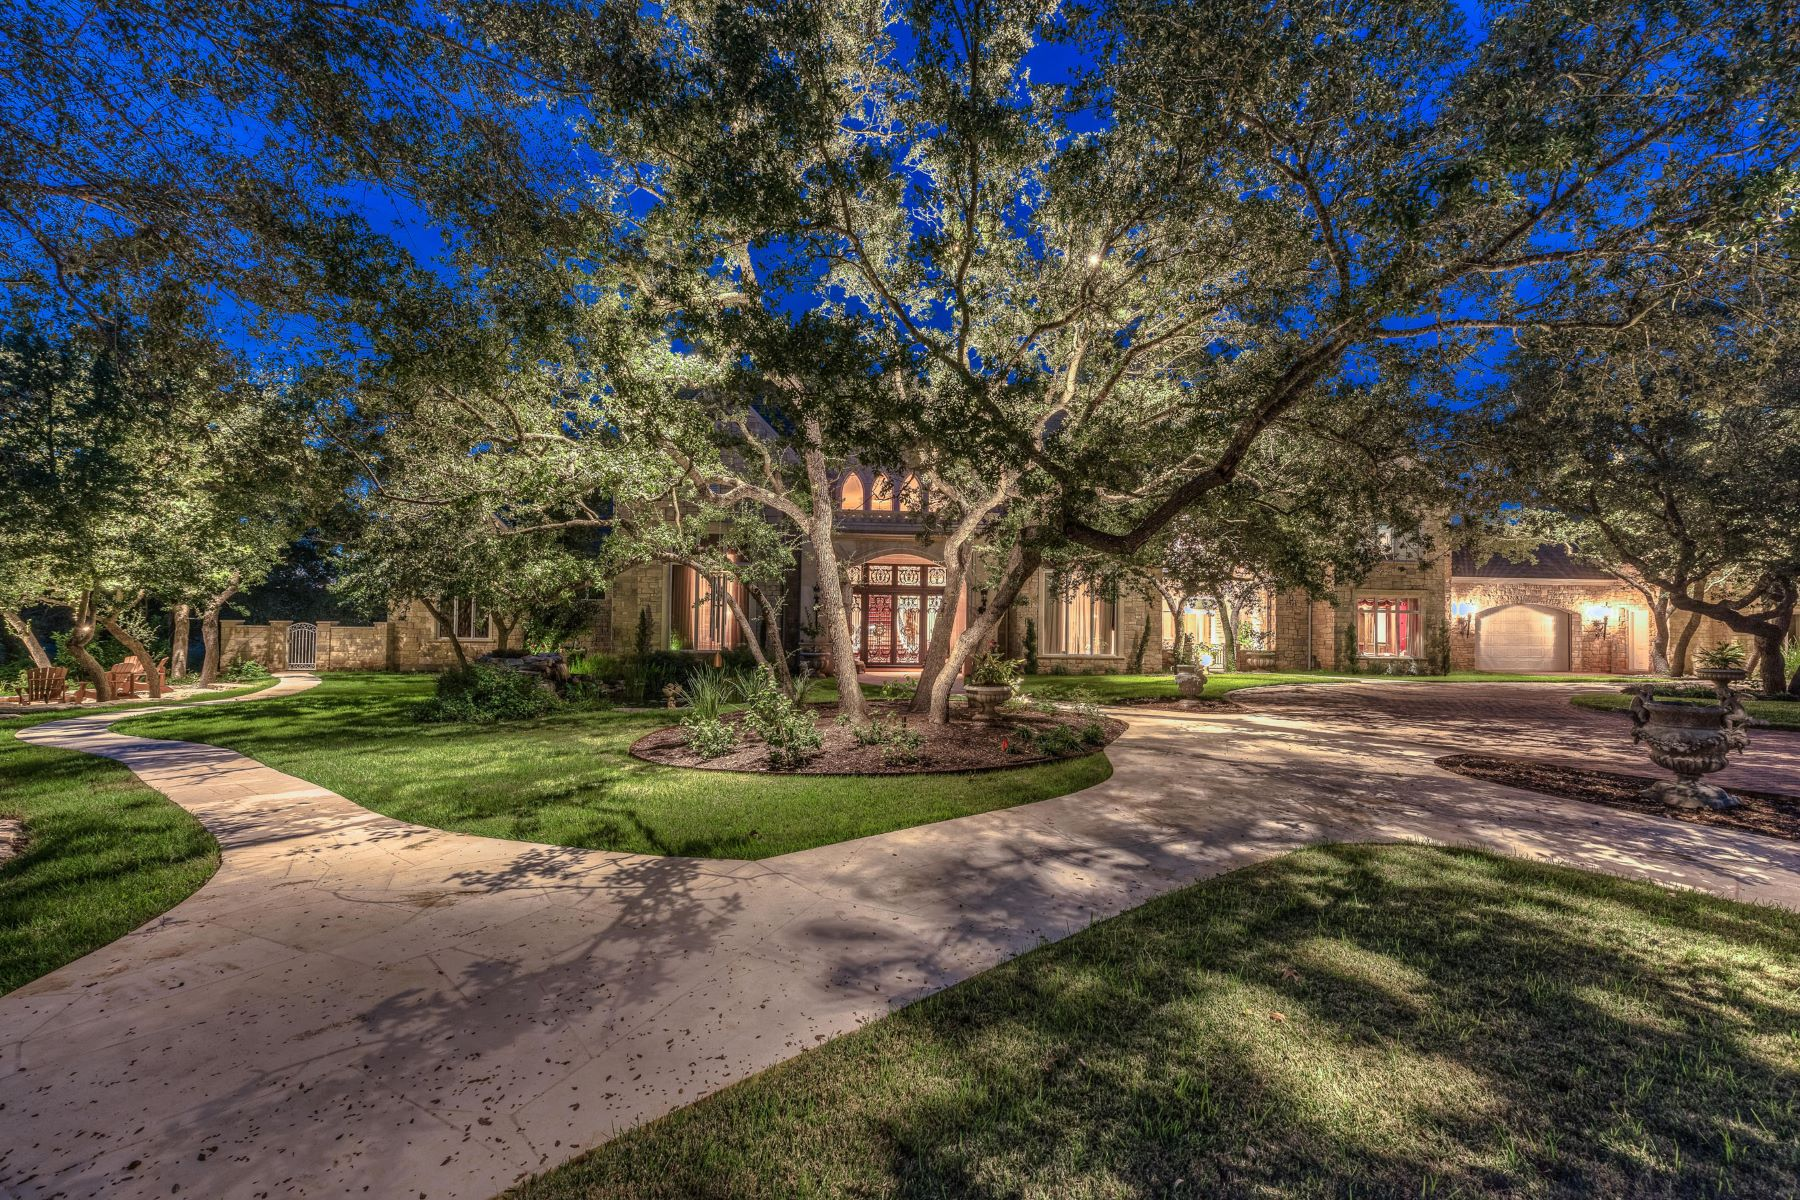 Additional photo for property listing at 8106 Chalk Knoll Dr, Austin 8106 Chalk Knoll Dr Austin, Texas 78735 United States